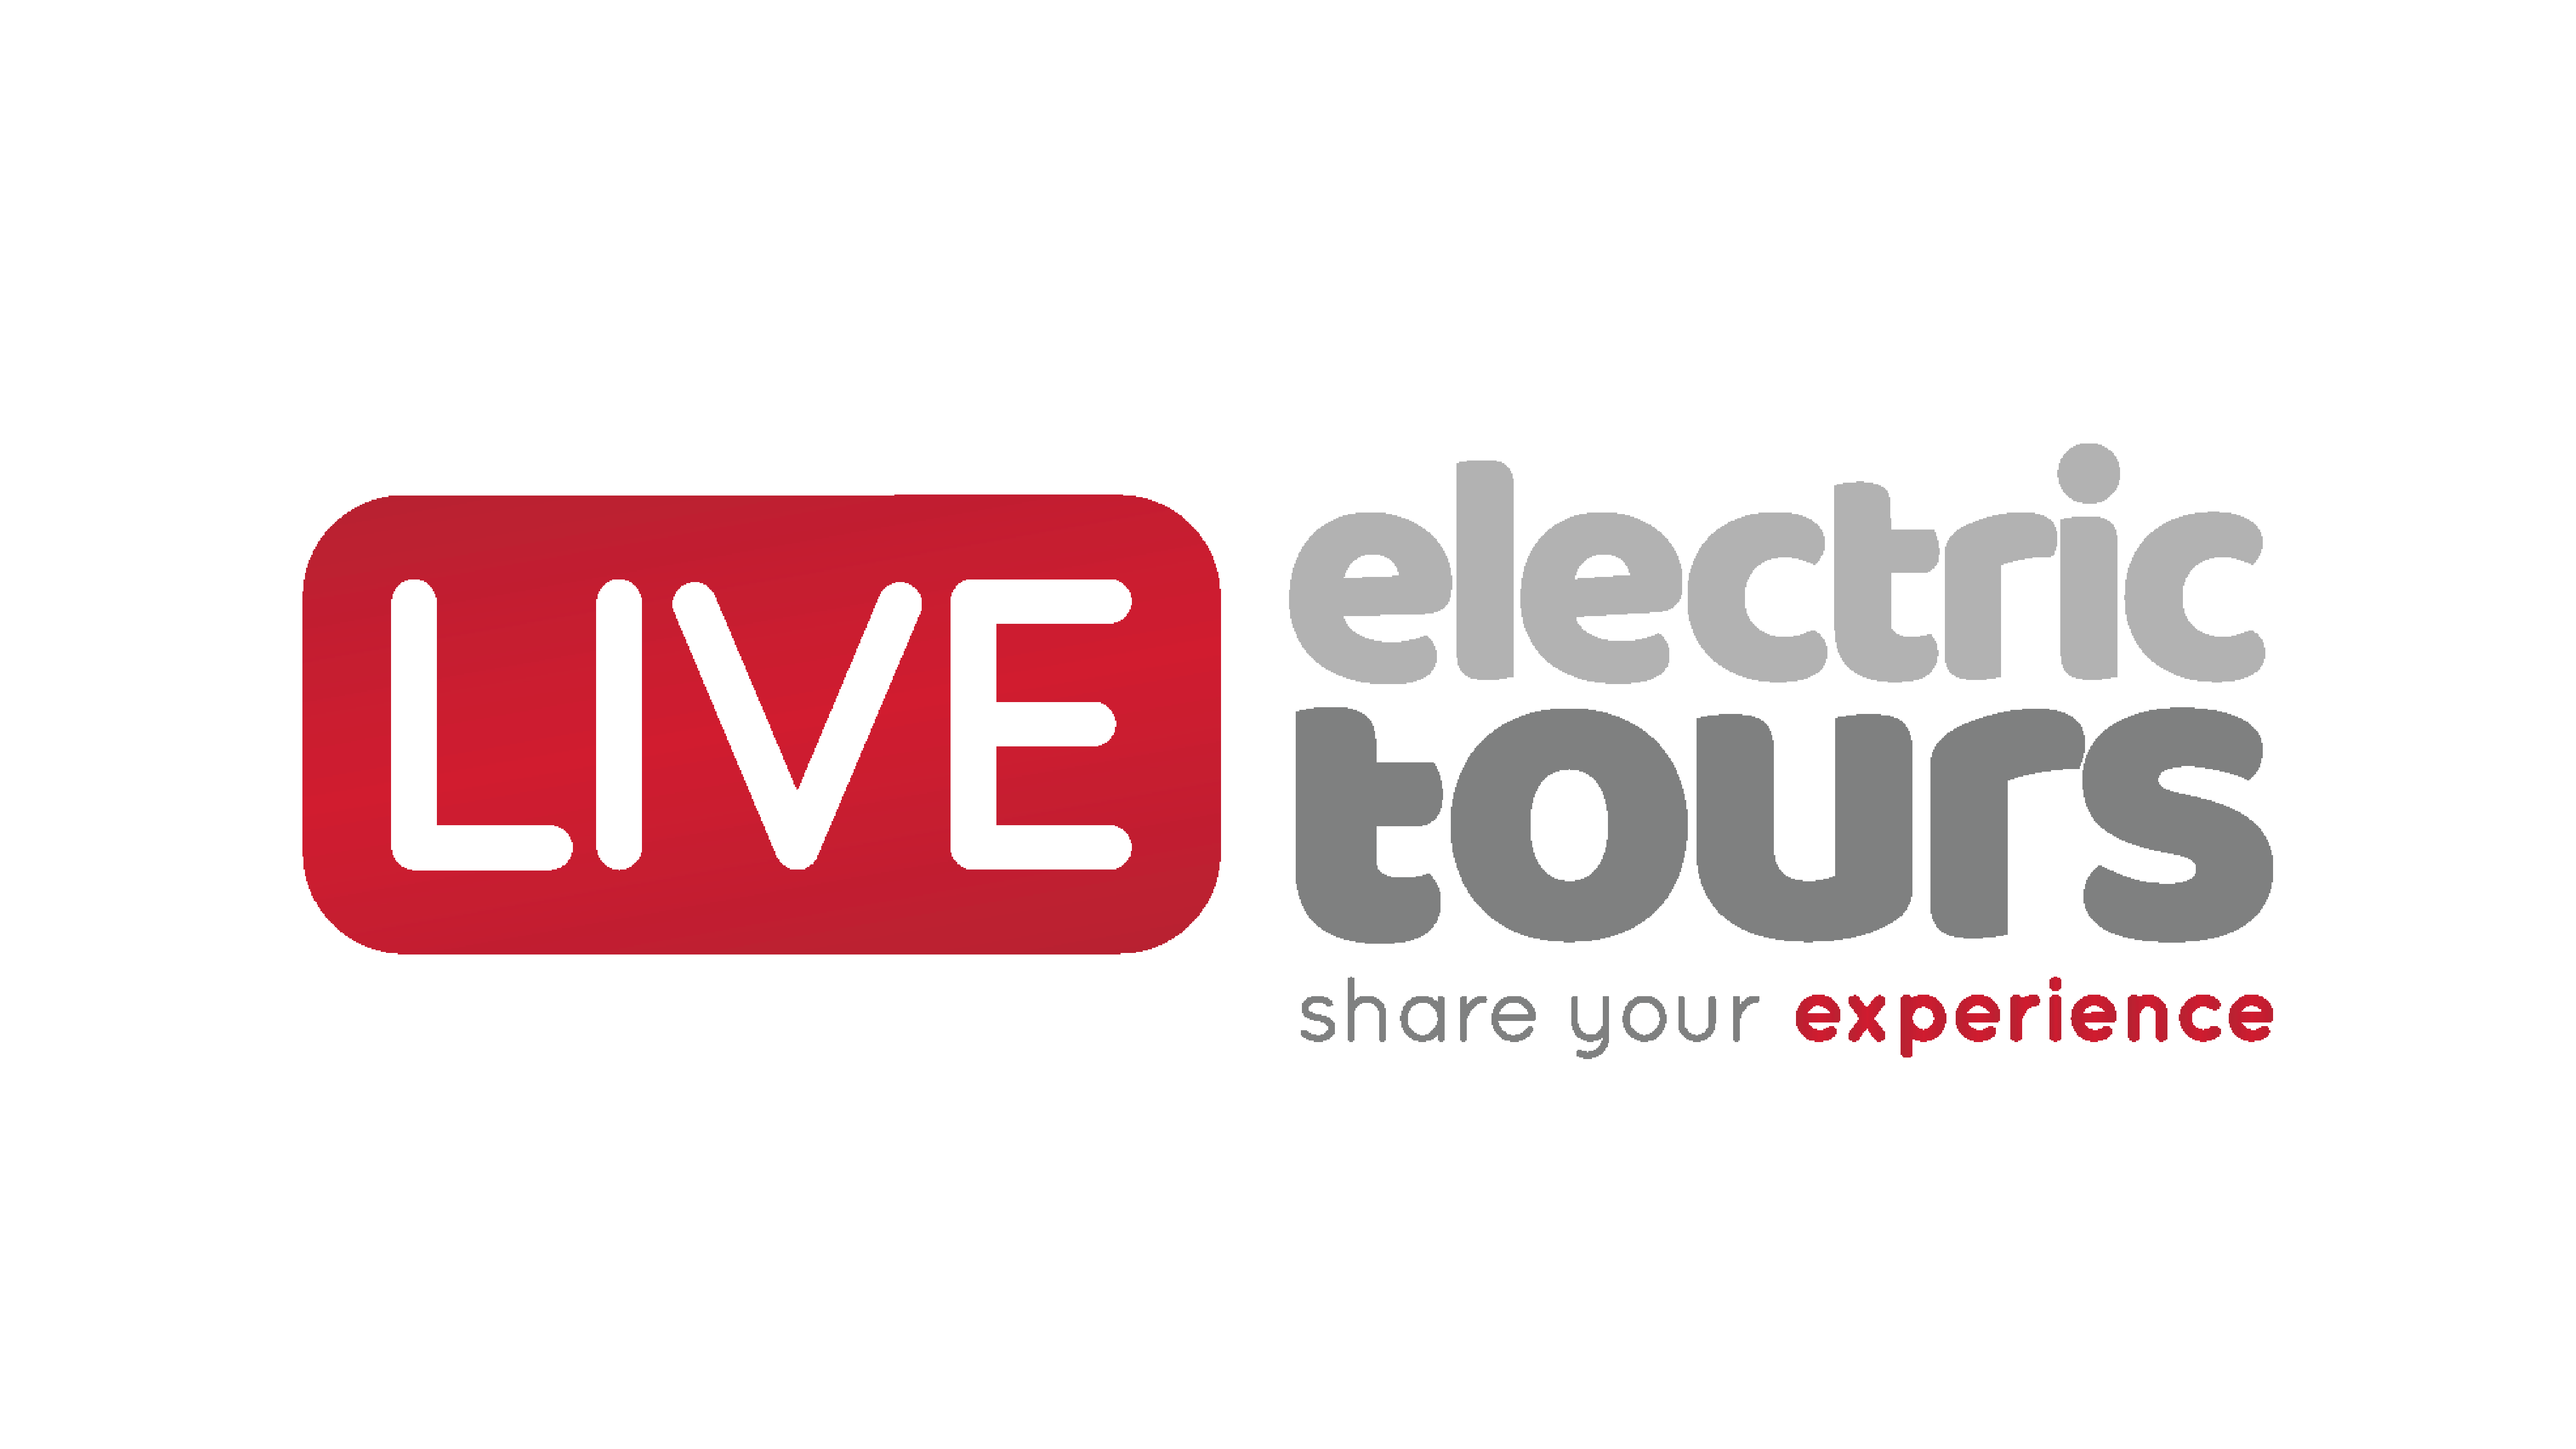 logo live electric tours